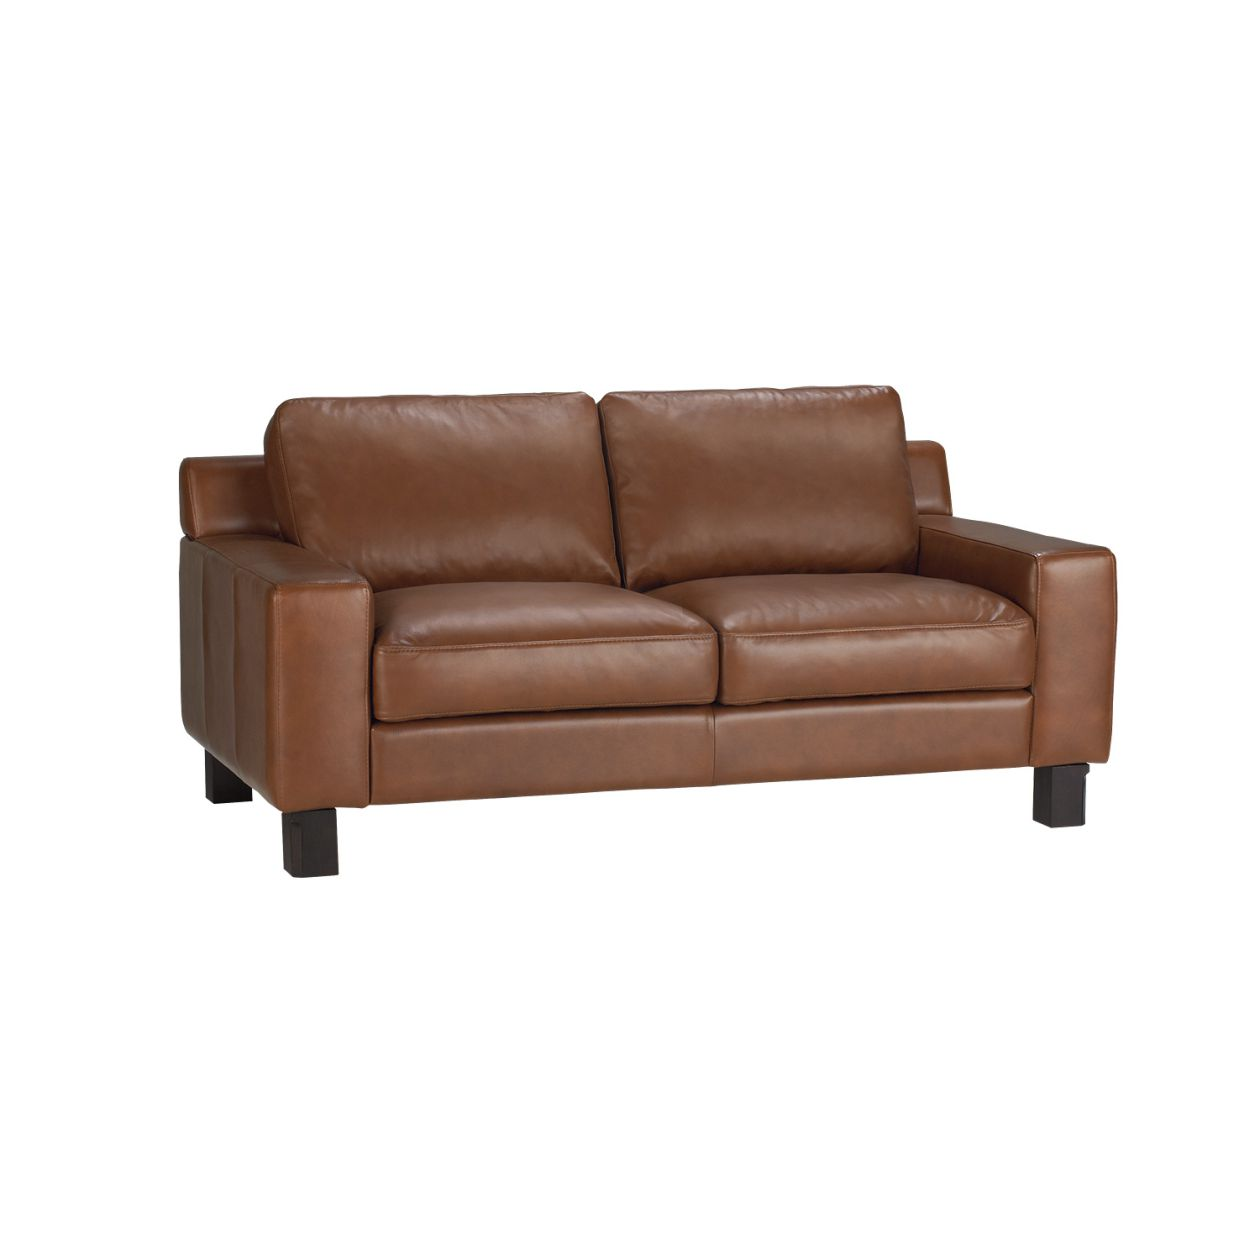 SERIEUX SOFA 1600 Lightchocolate*DB